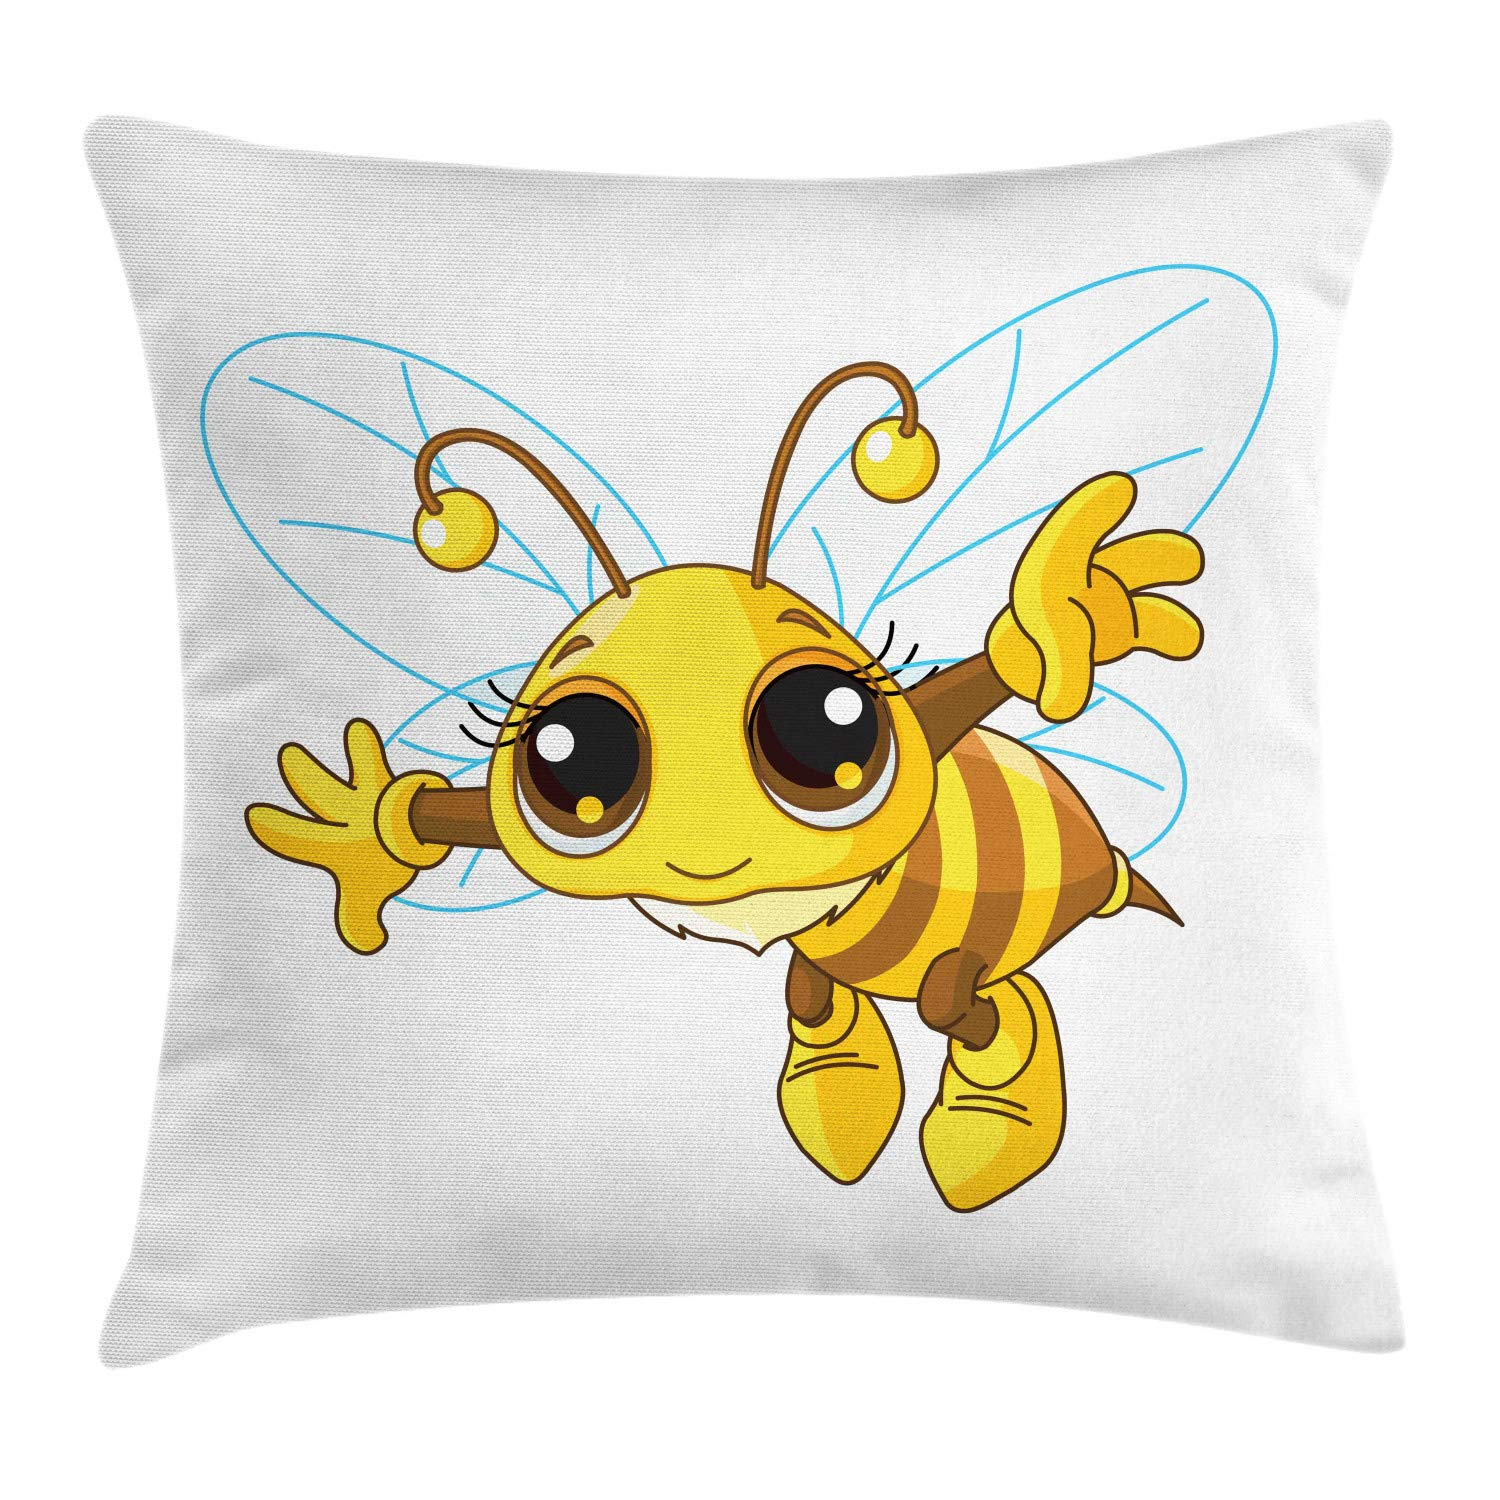 Lunarable Honey Bee Throw Pillow Cushion Cover, Insect with Eyes and Outline Wings Nursery Cartoon, Decorative Square Accent Pillow Case, 26'' X 26'', Mustard Ginger Black and Sky Blue